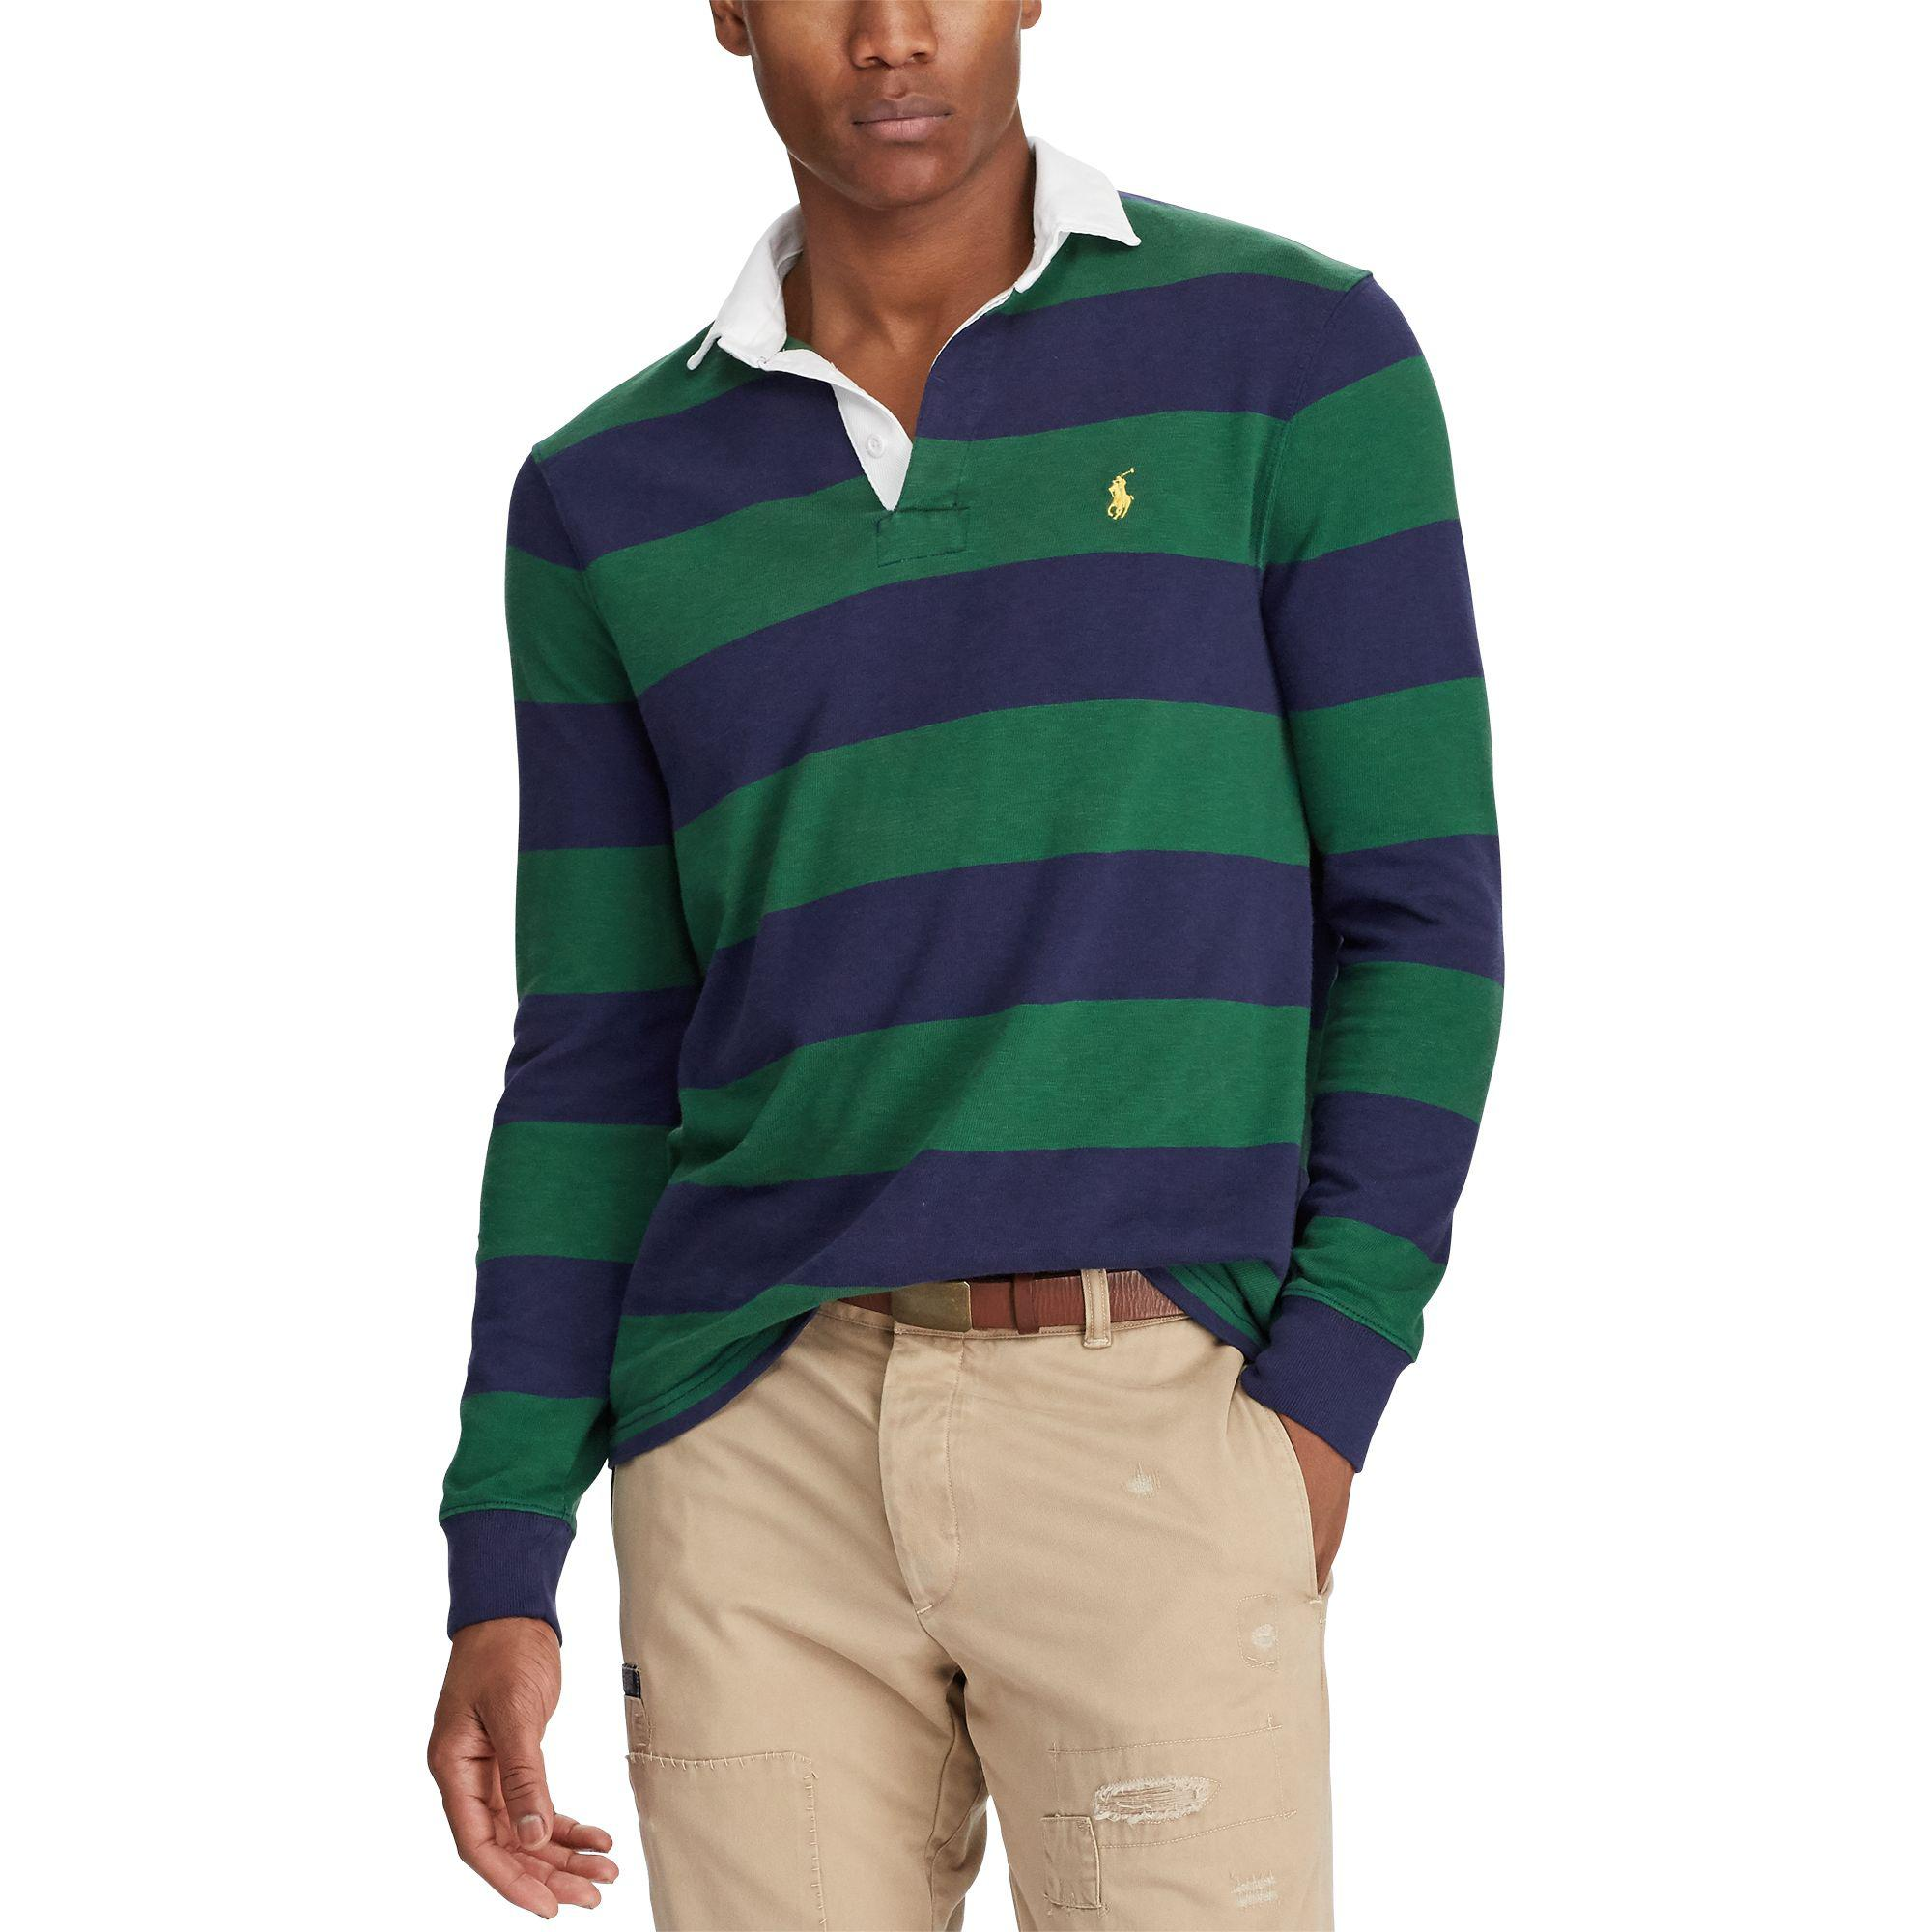 15e066640c41 Polo Ralph Lauren The Iconic Rugby Shirt for Men - Lyst